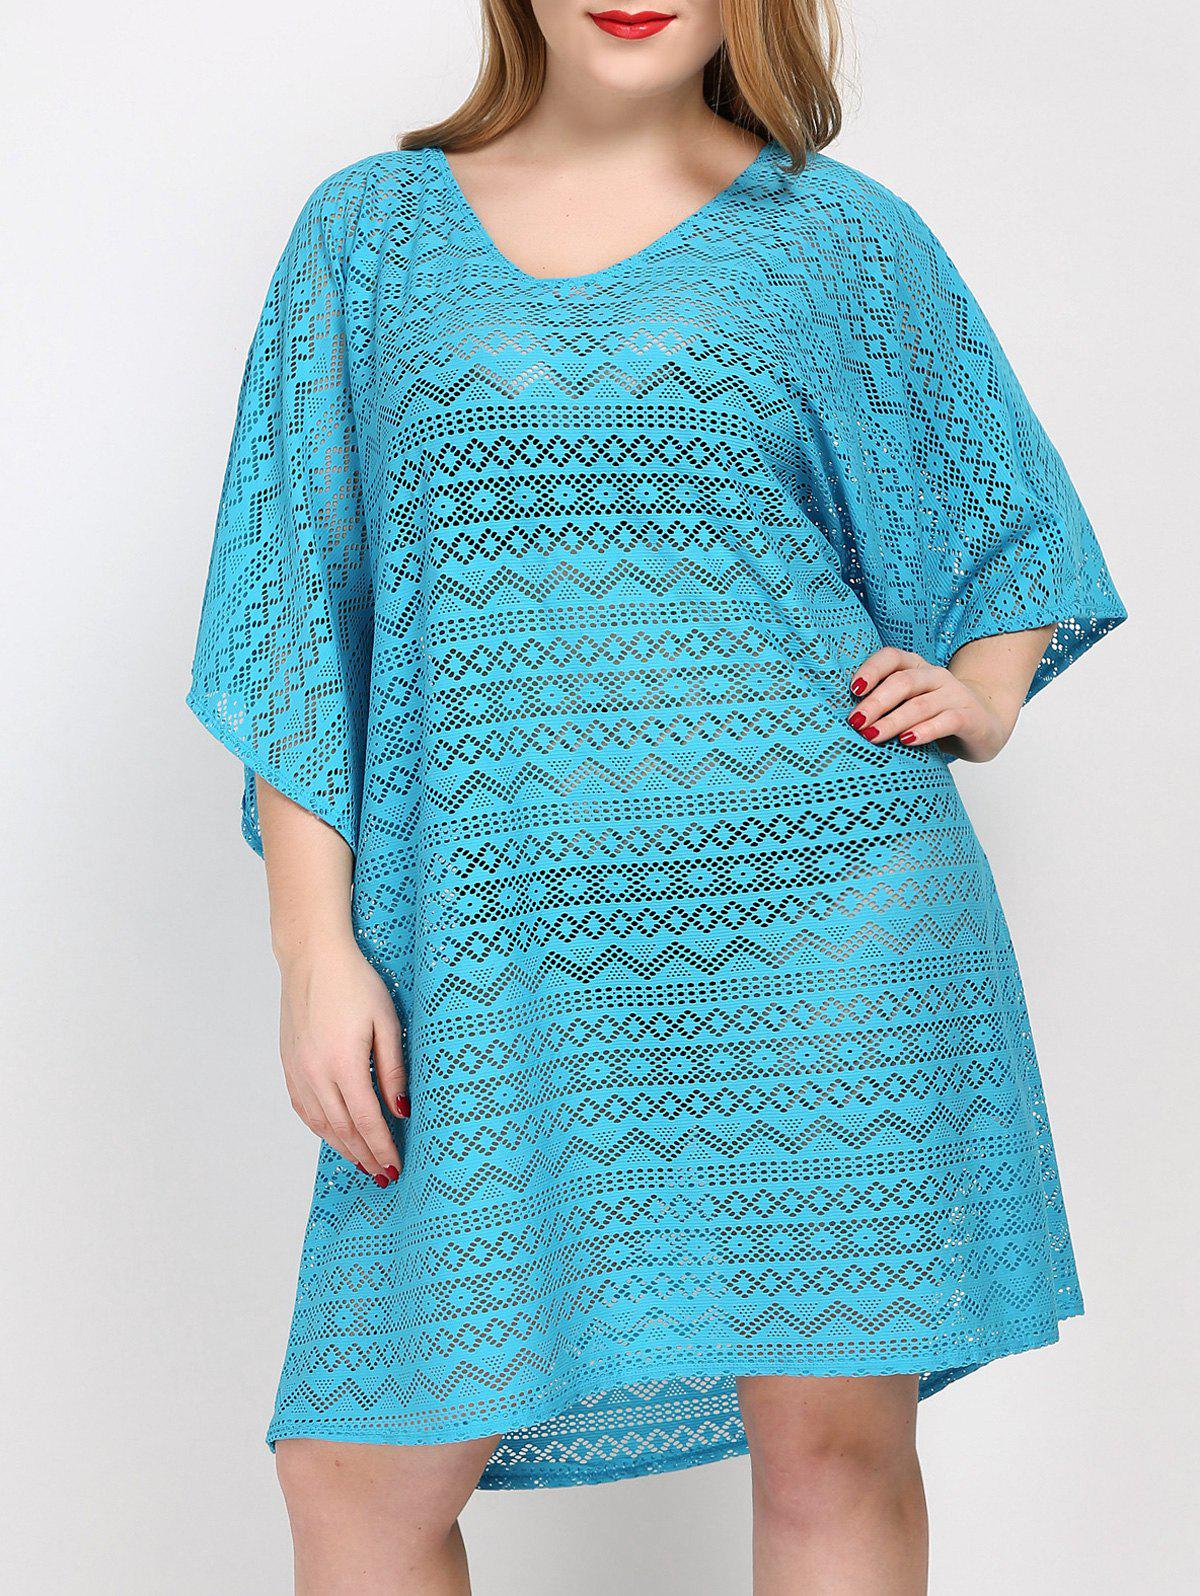 Plus Size Backless Cover Up Dress - LAKE BLUE ONE SIZE